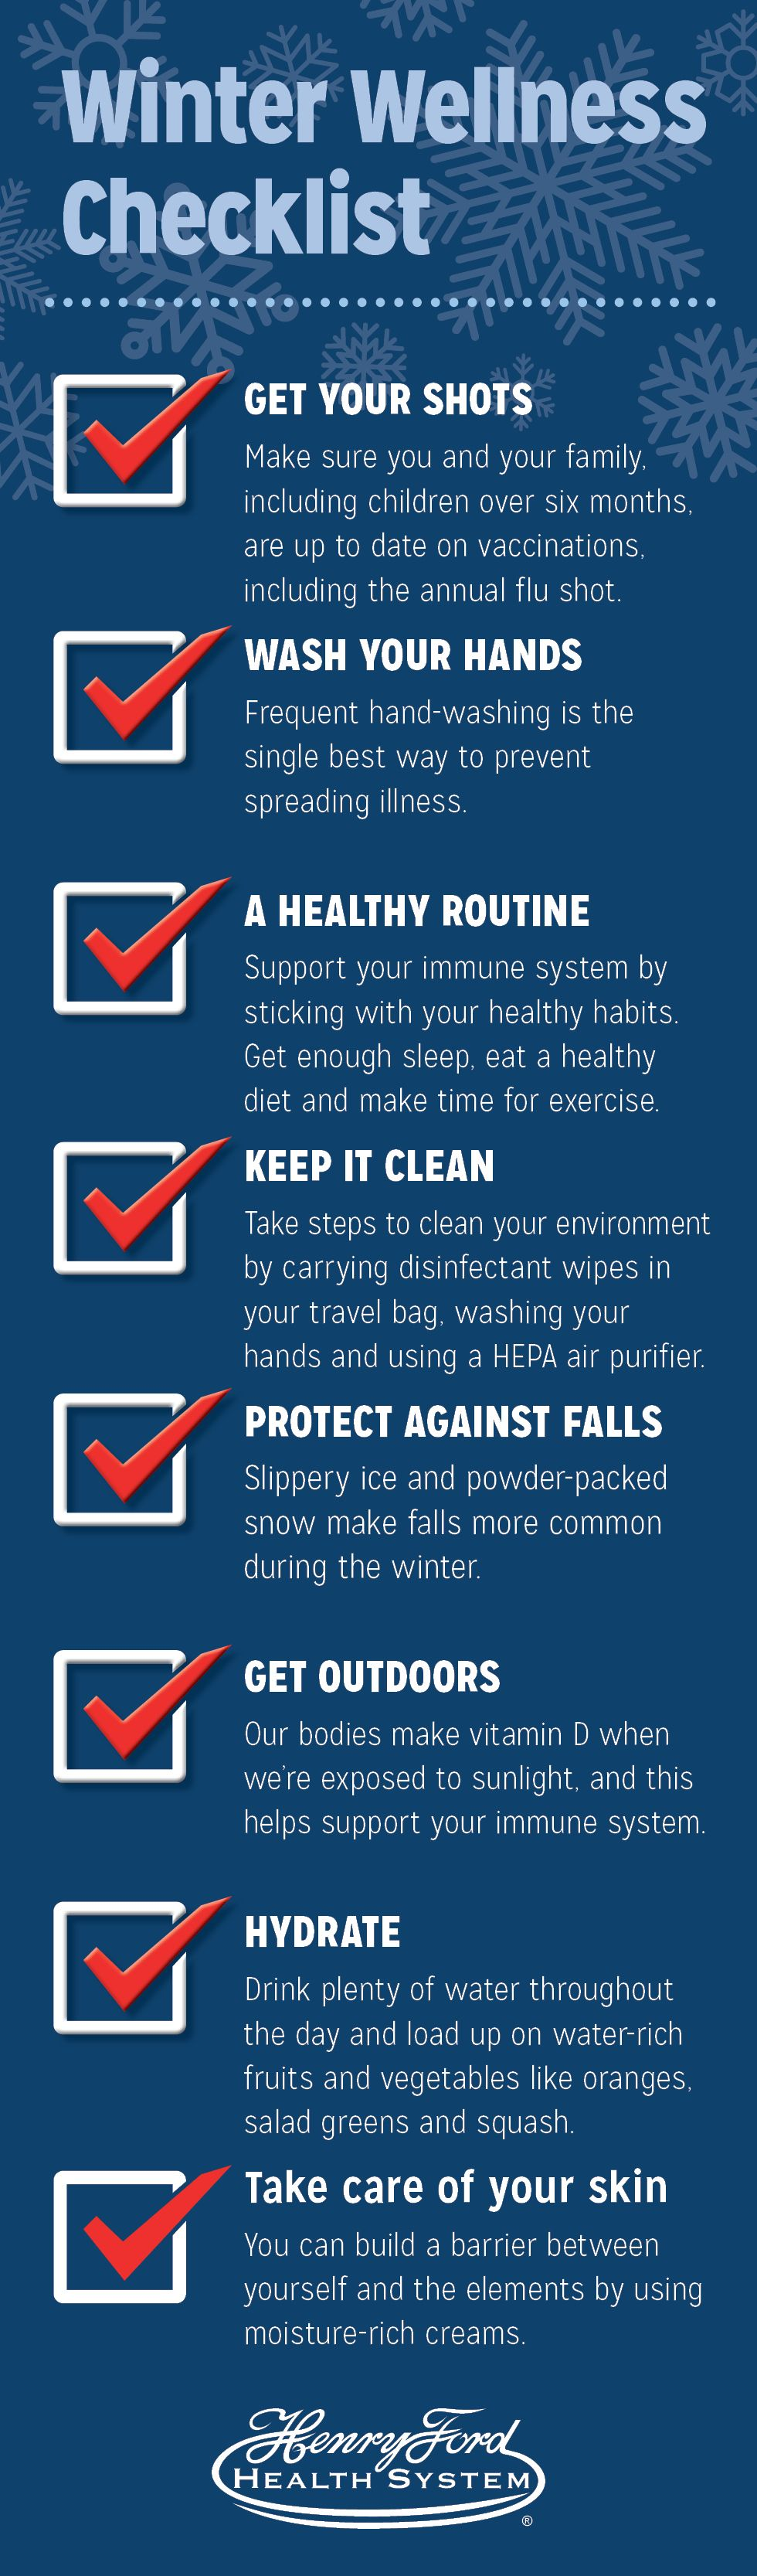 advice to stay healthy winter wellness checklist winter may be a